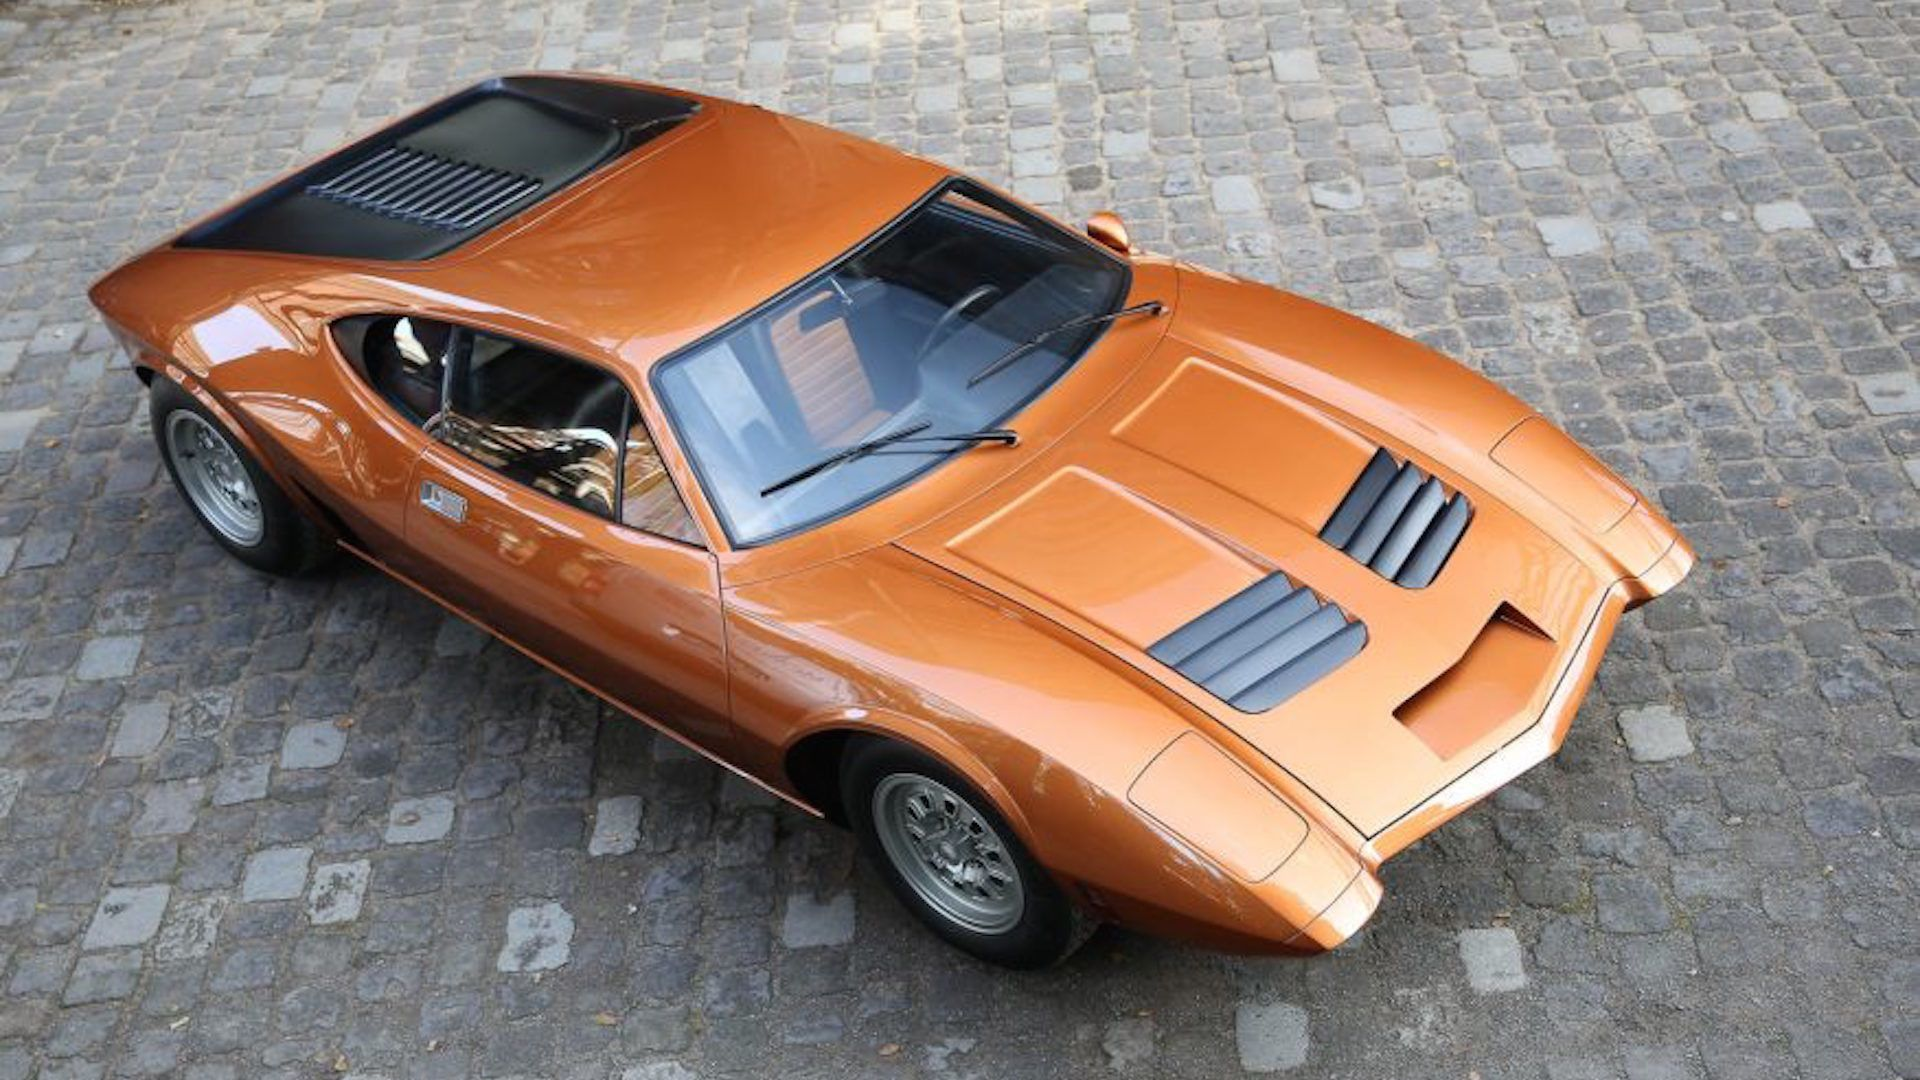 This AMX/3 could be the most expensive AMC ever sold | Awesome stuff ...